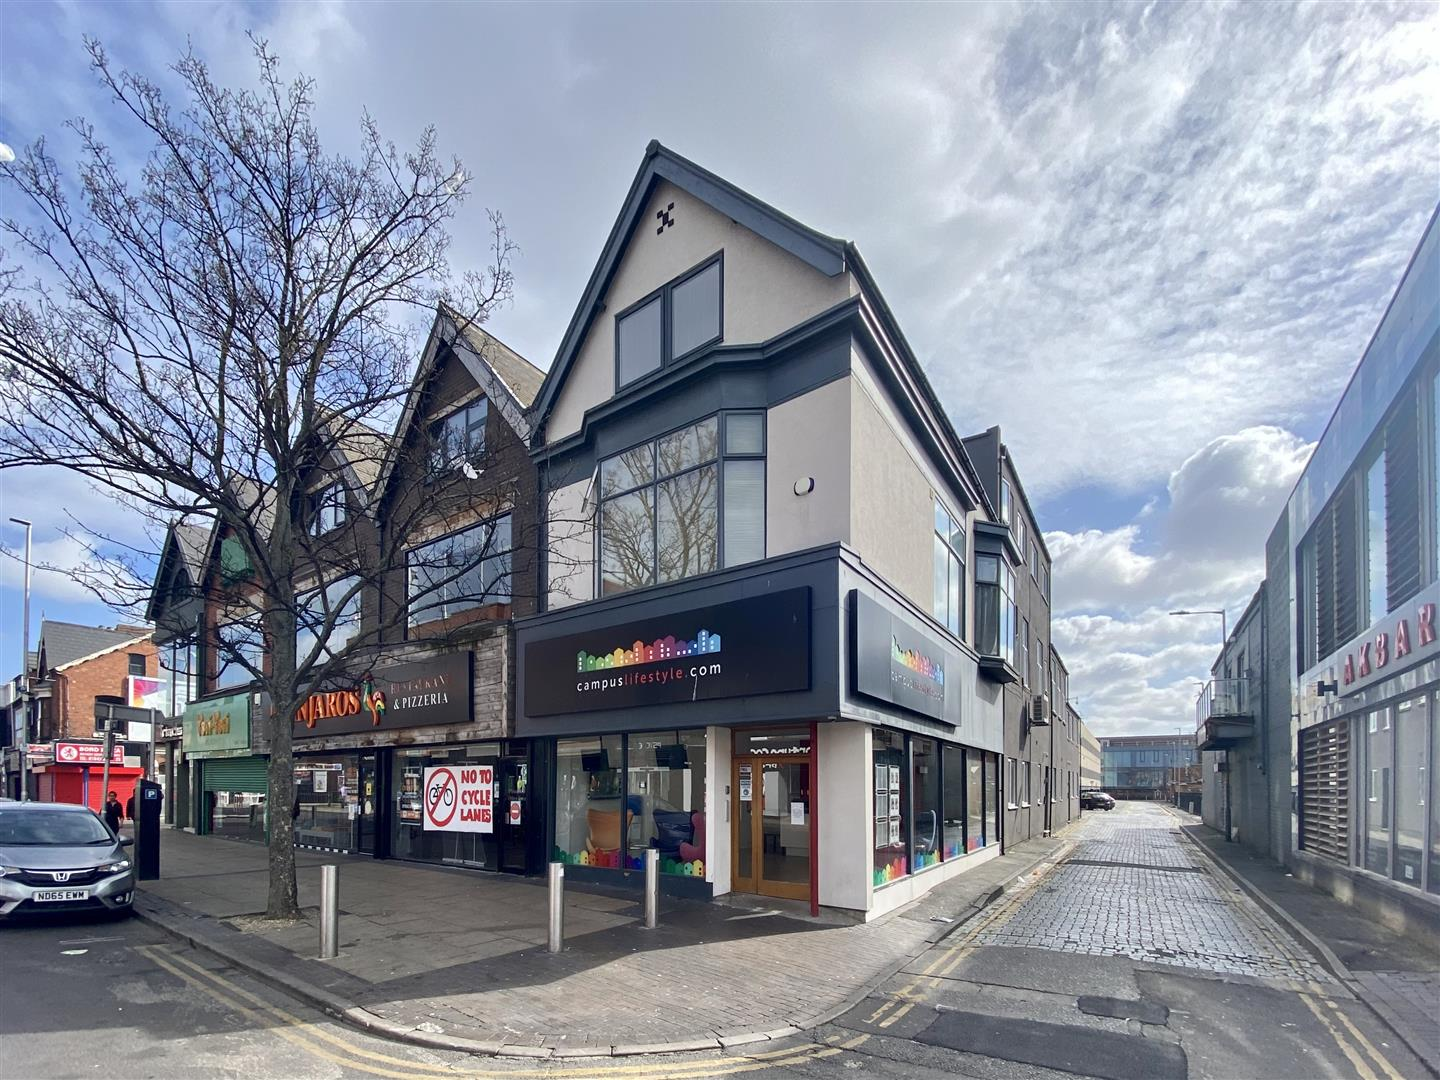 190 Linthorpe Road Middlesbrough, 15 Bedrooms  Block of flats ,For Sale